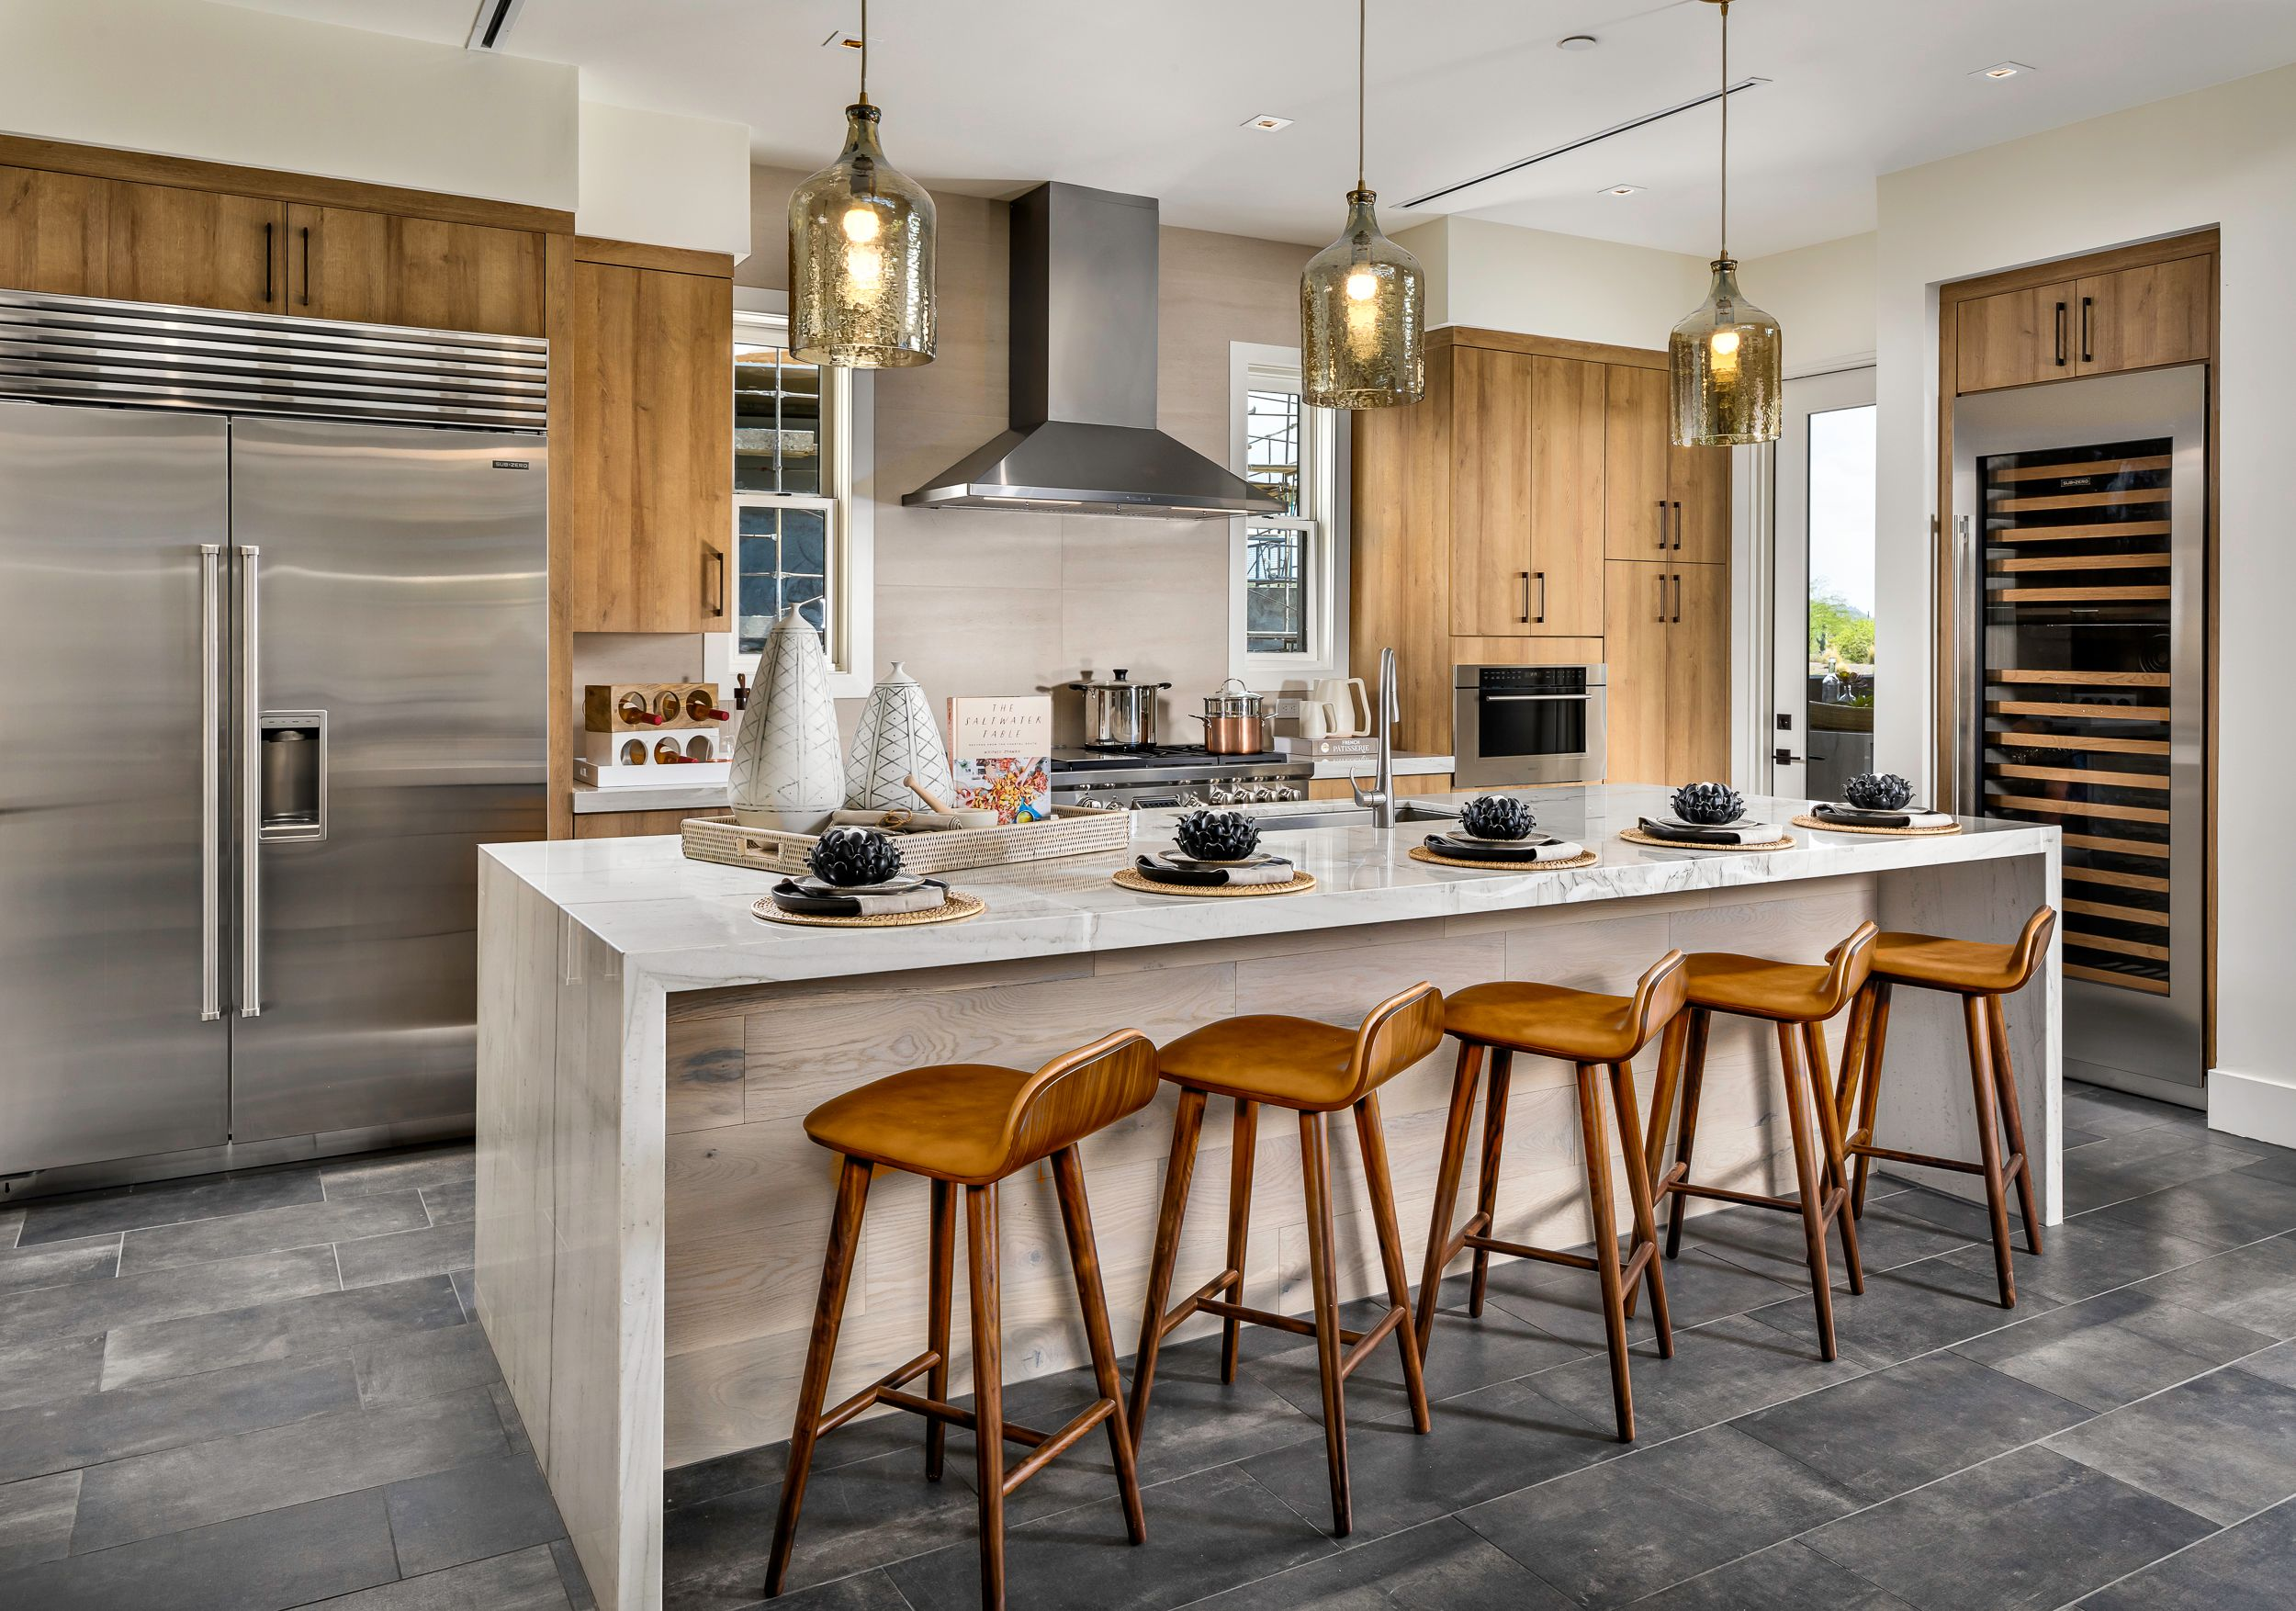 Kitchen featured in the Zenith By Family Development Group in Phoenix-Mesa, AZ